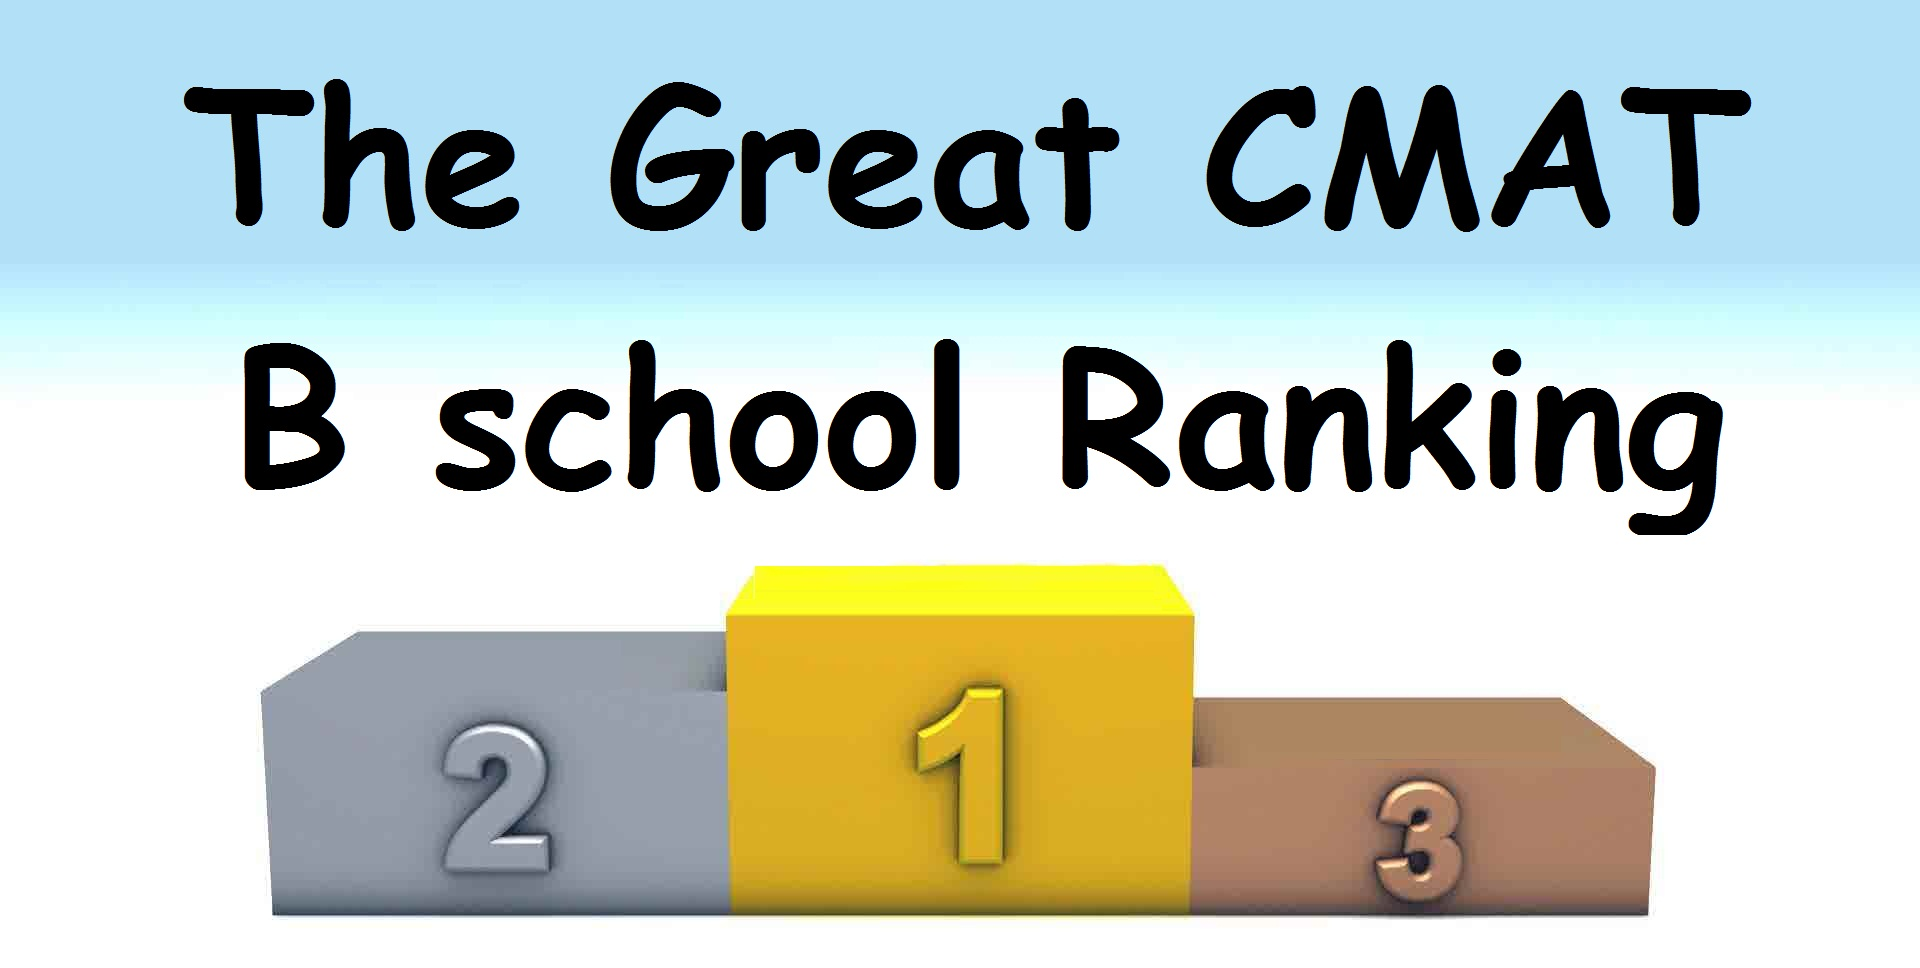 Great Ranking Bschool cetking